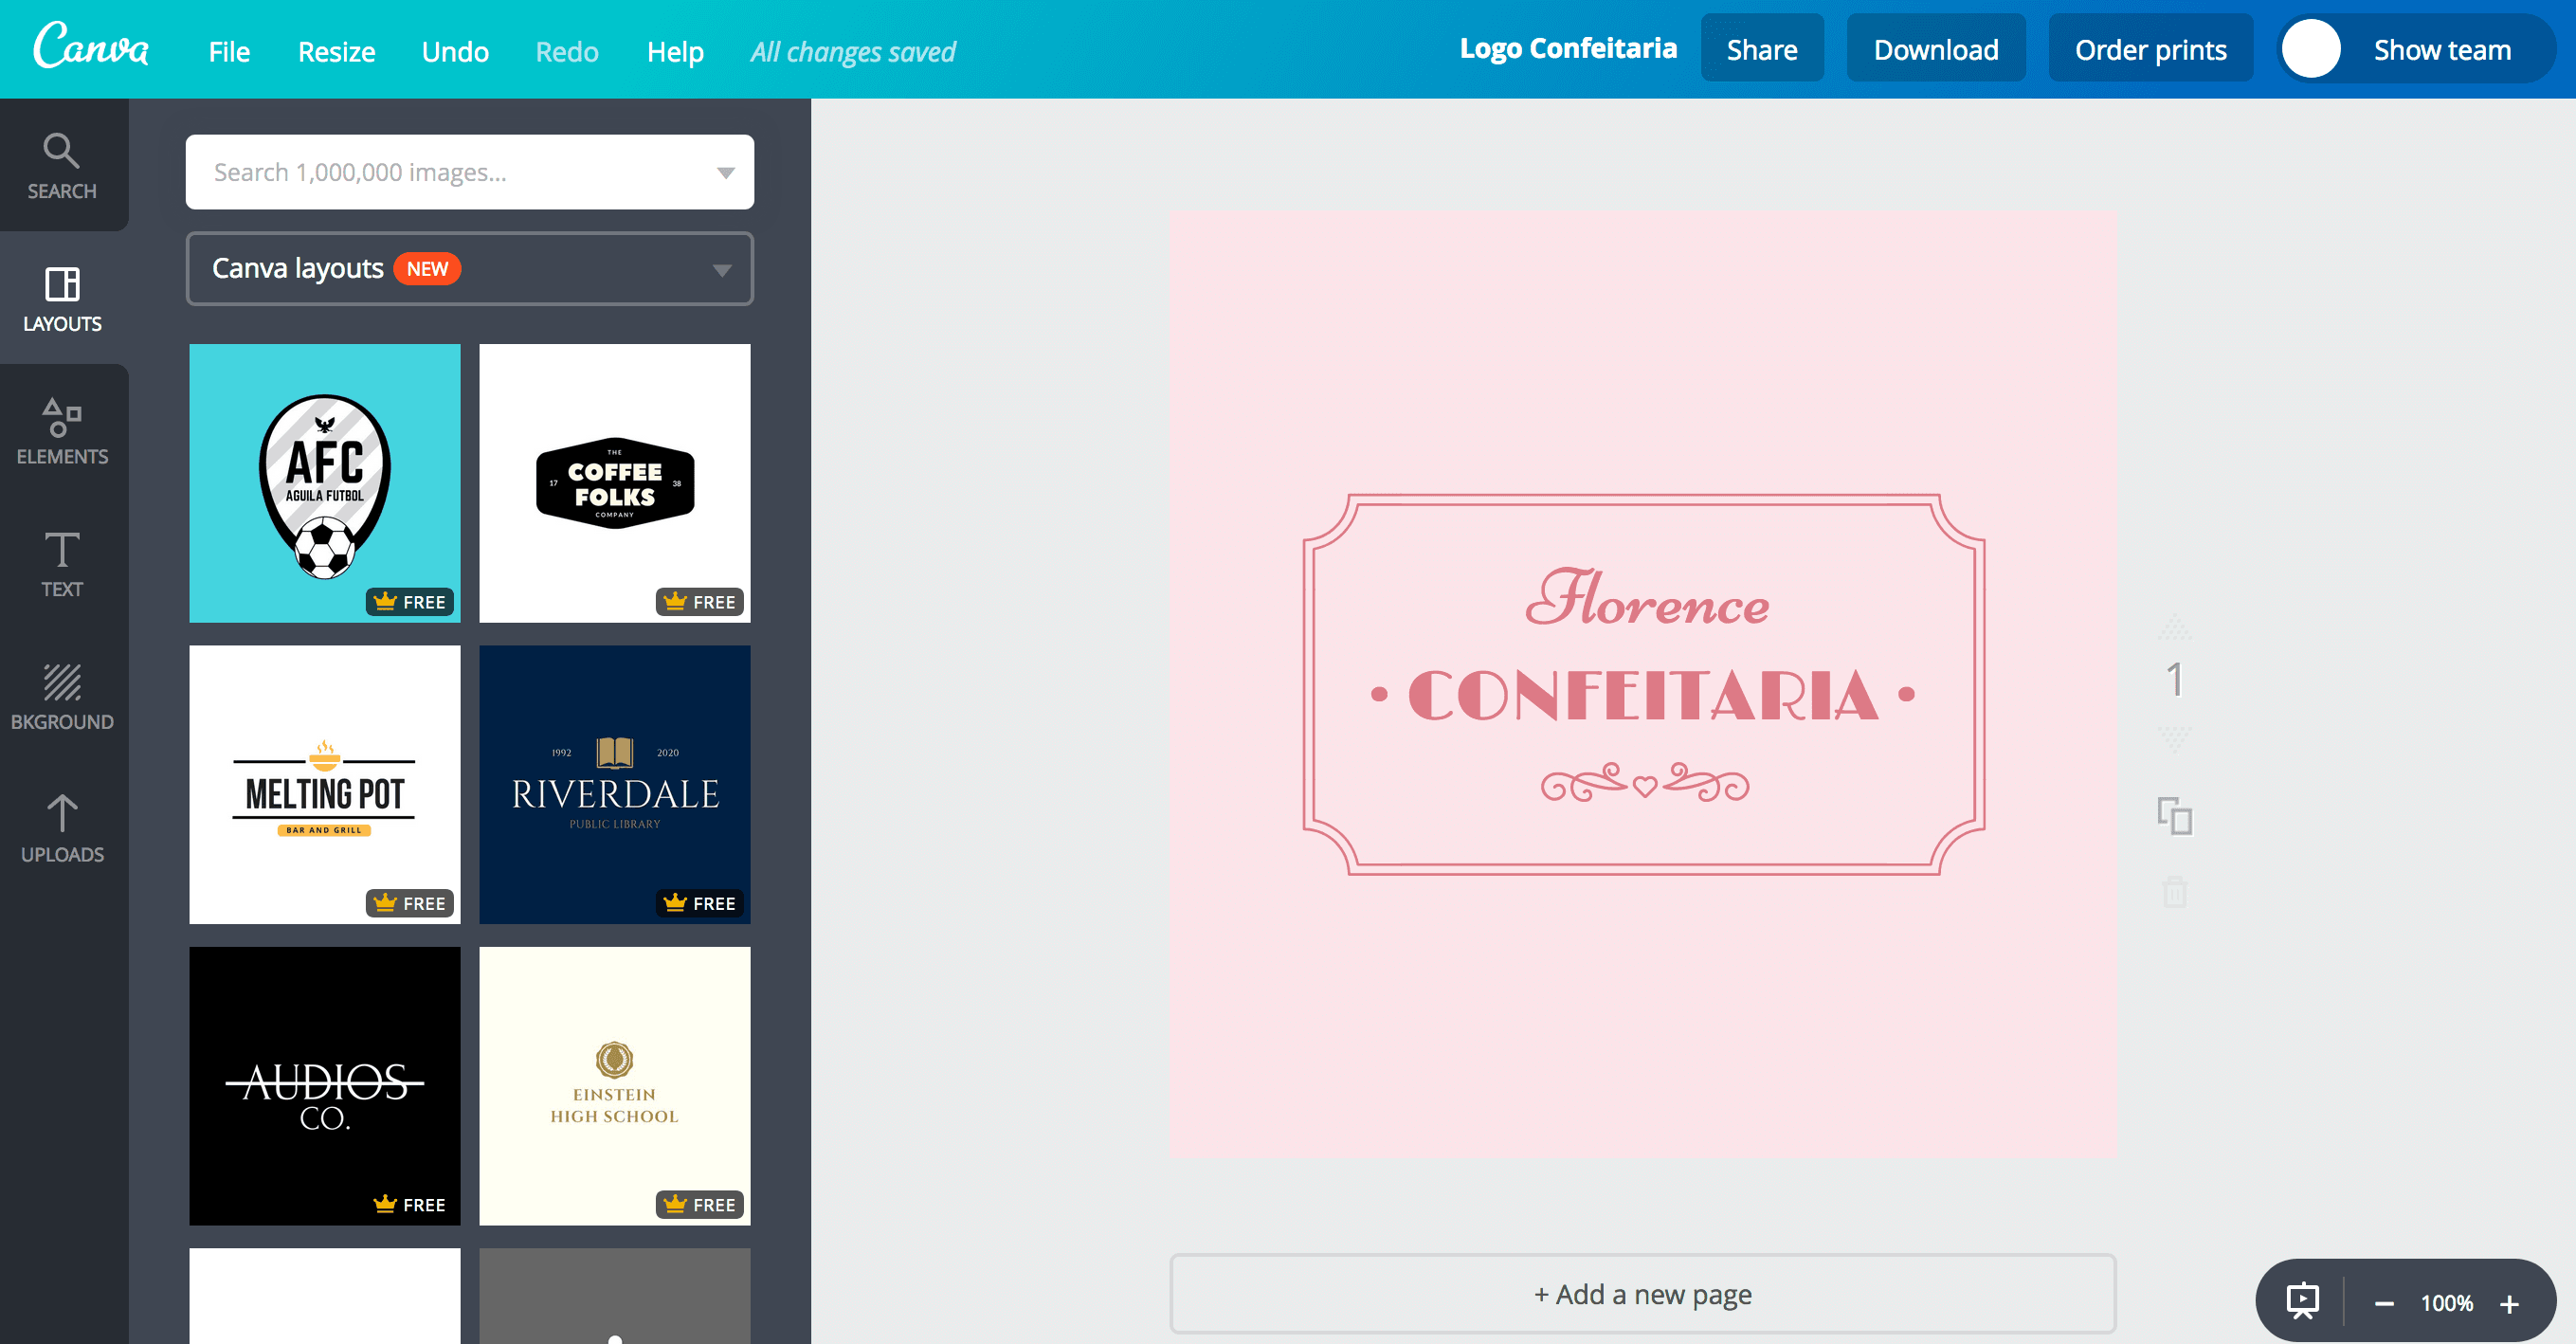 Outros designs do Canva